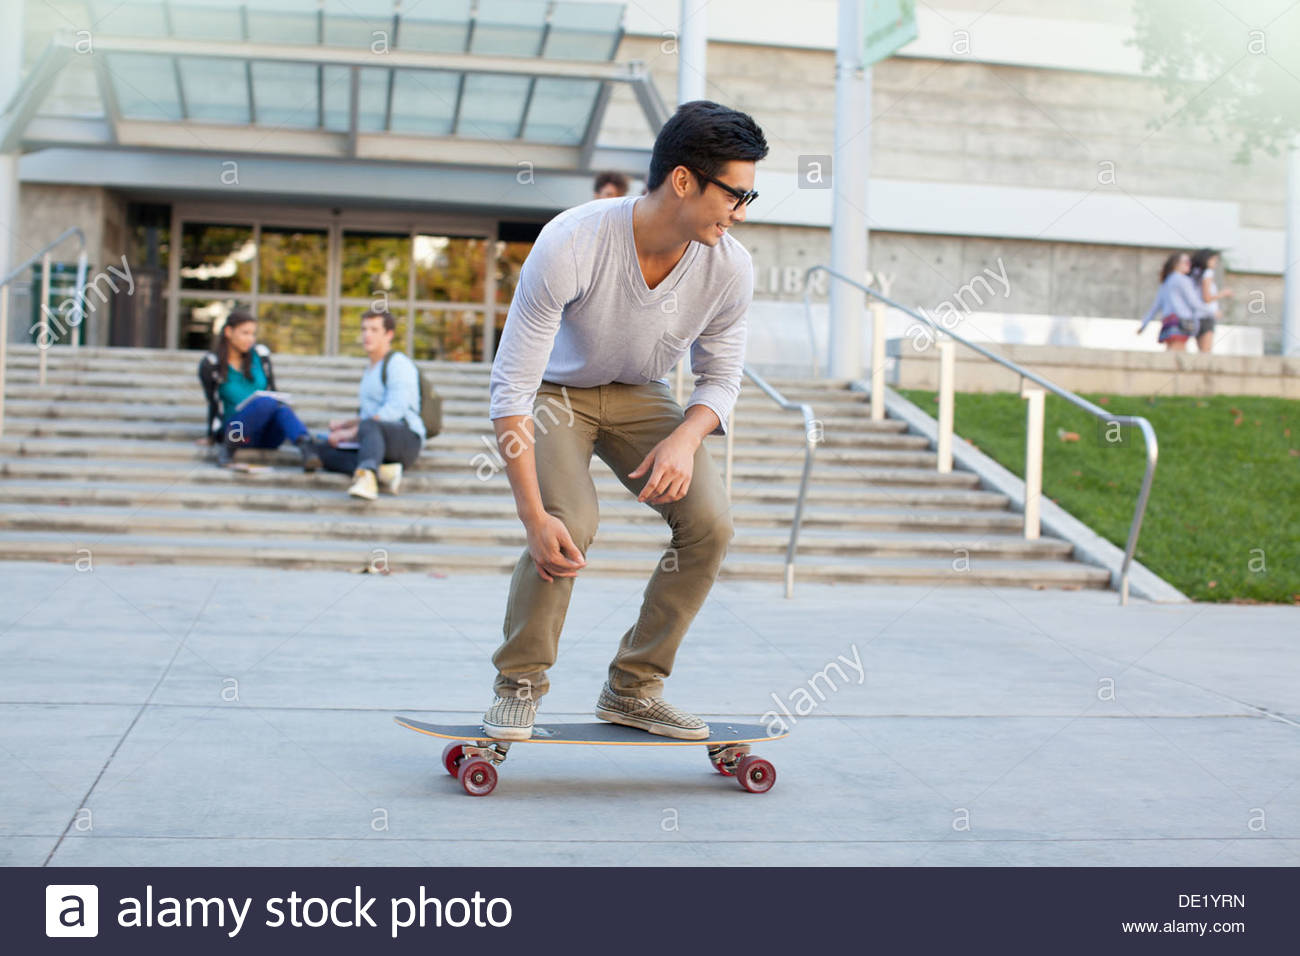 Student skateboarding on campus - Stock Image